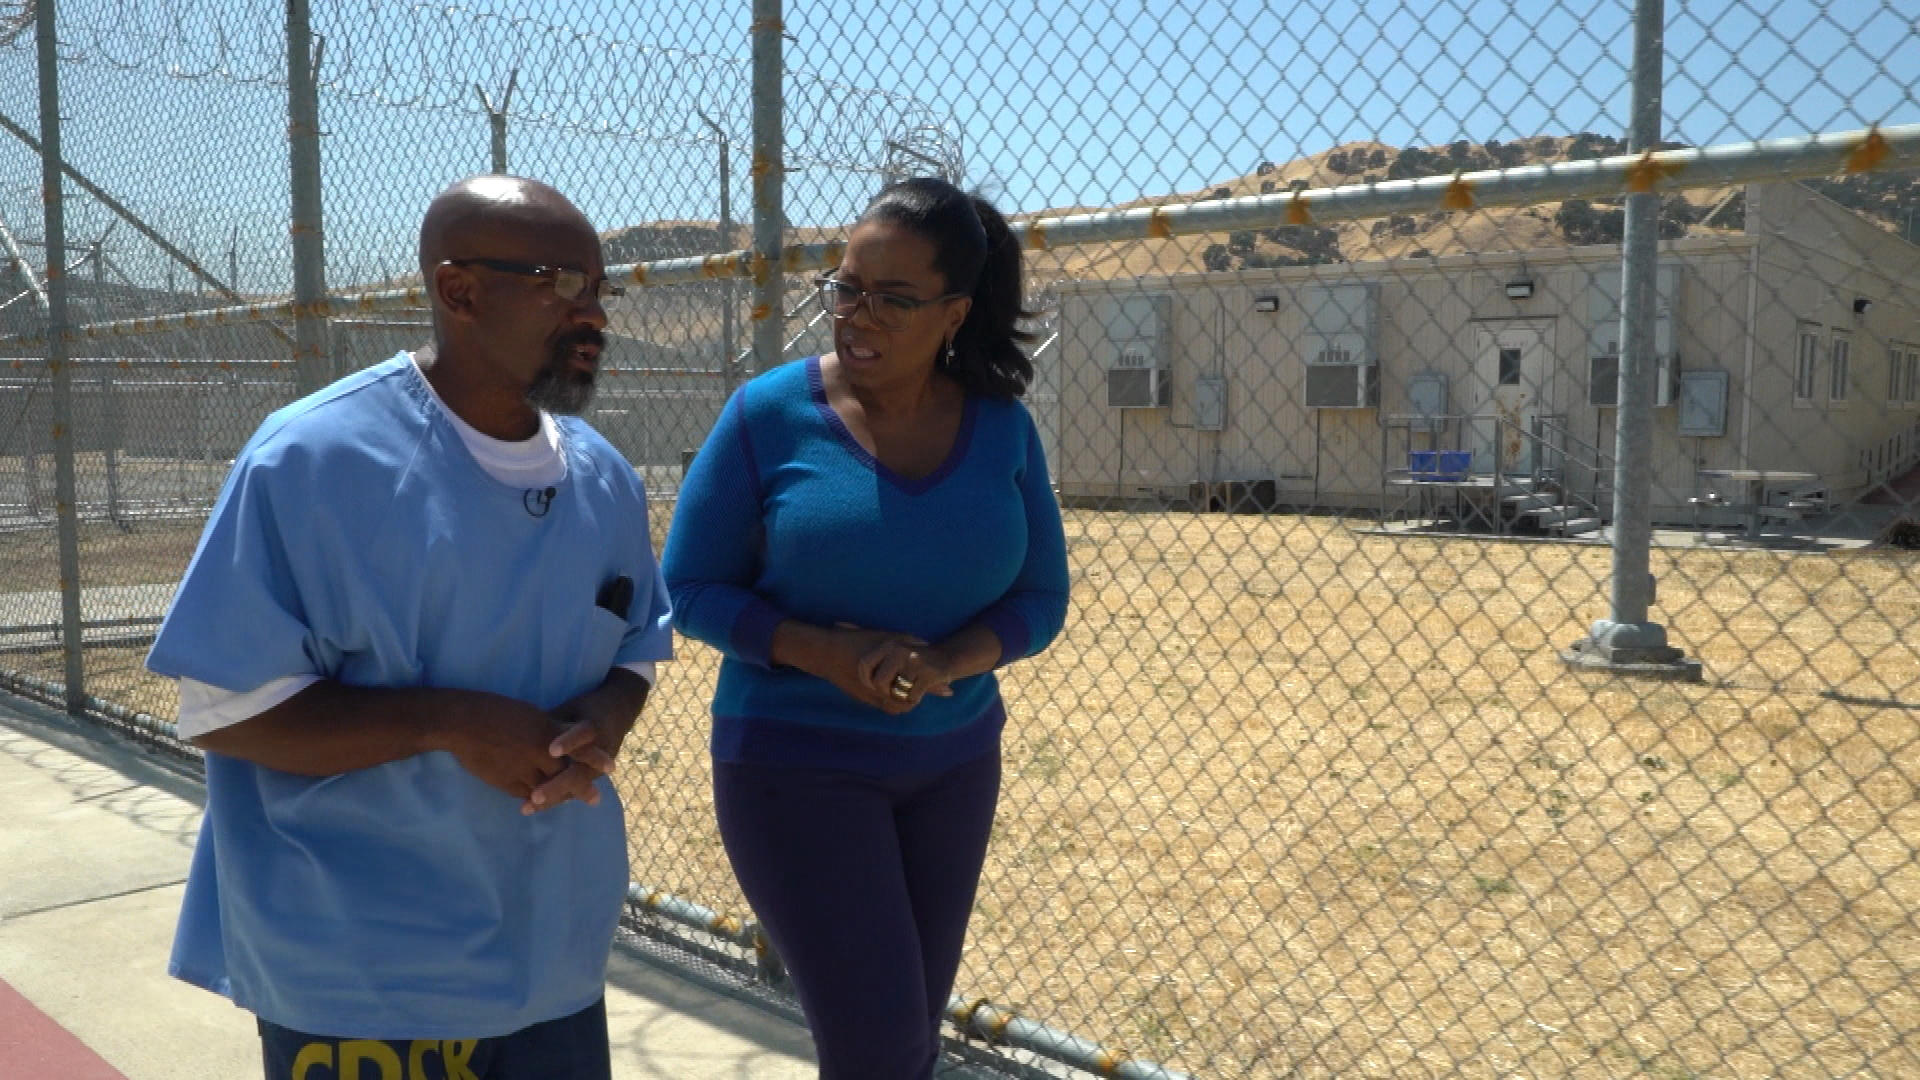 Why Oprah pitched a 60 Minutes story on prisons